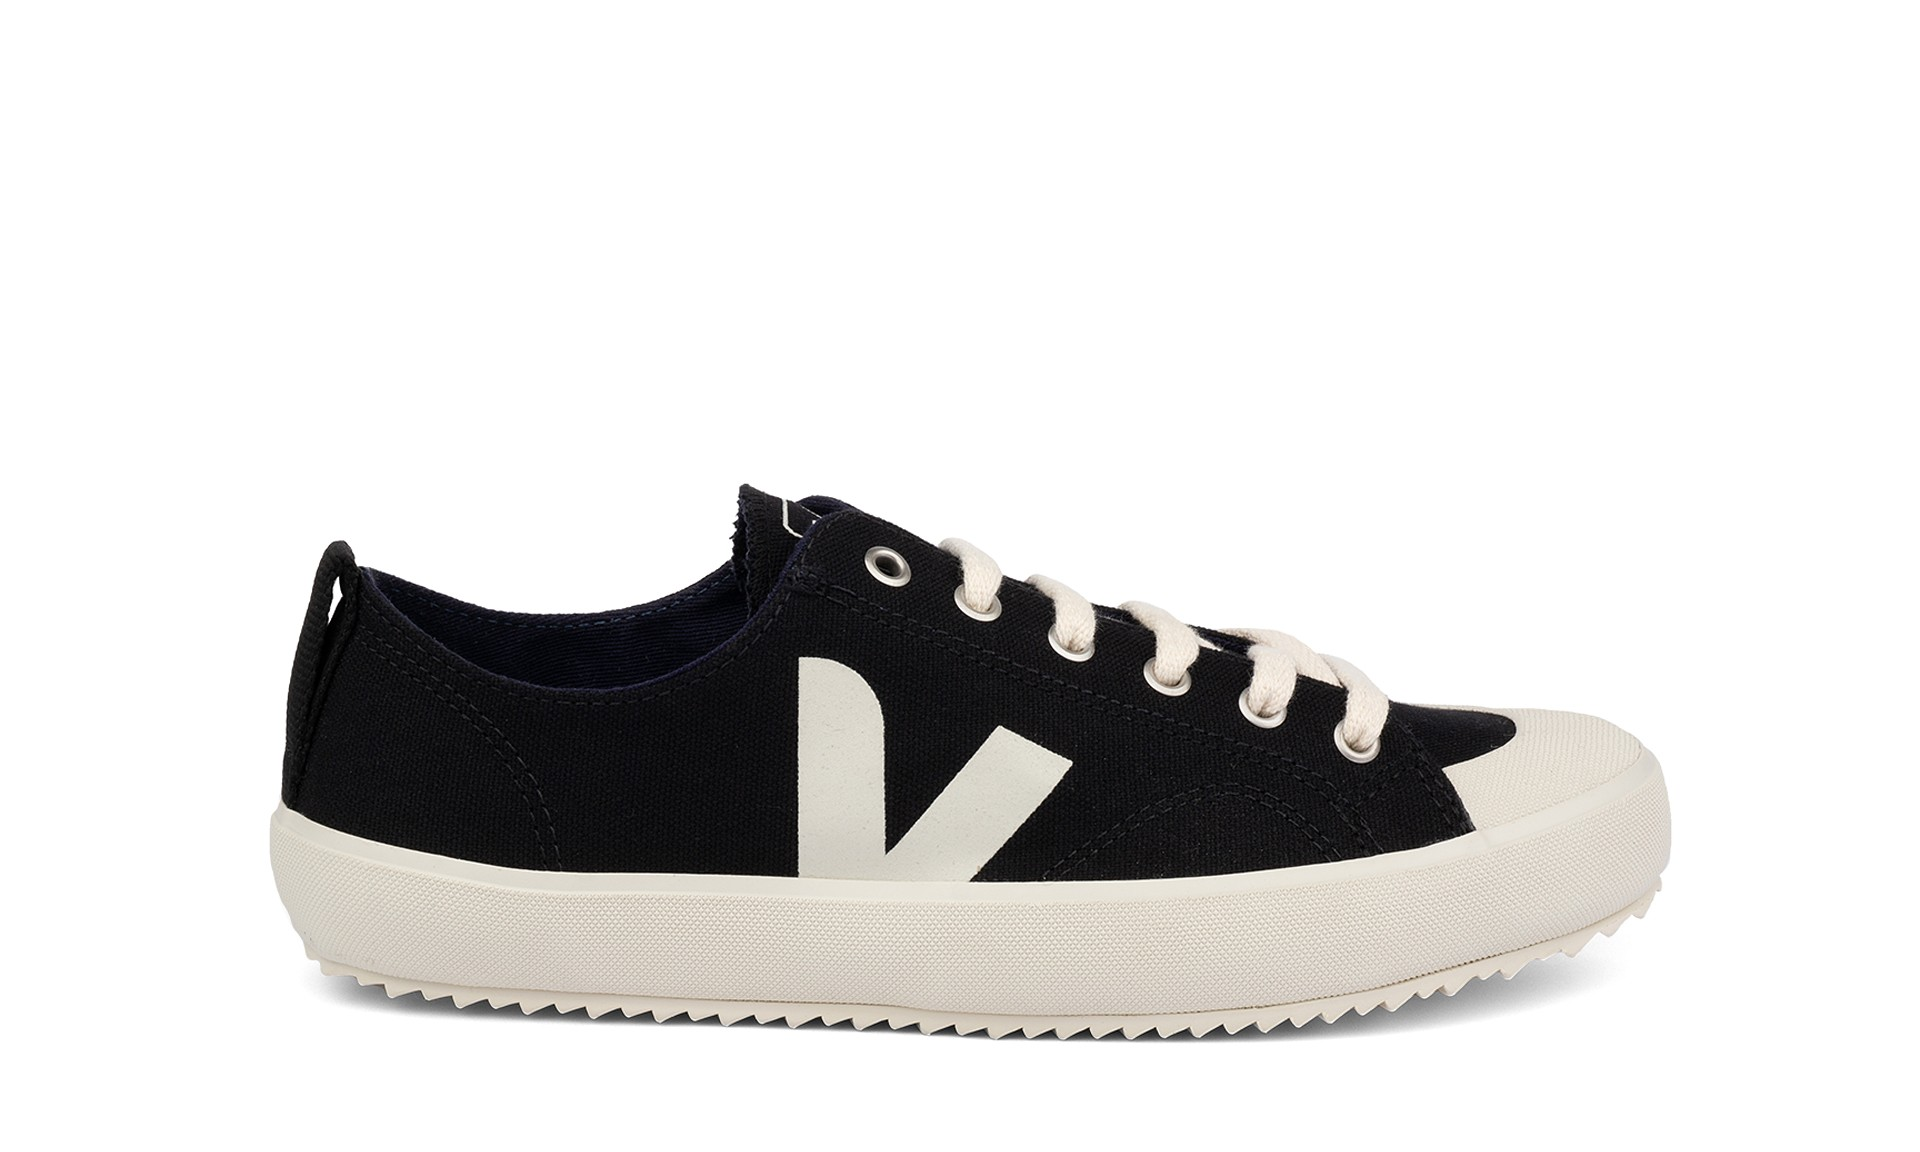 Noveno cisne exótico  Vegan Sneaker | VEJA Nova Canvas Black Pierre | avesu VEGAN SHOES